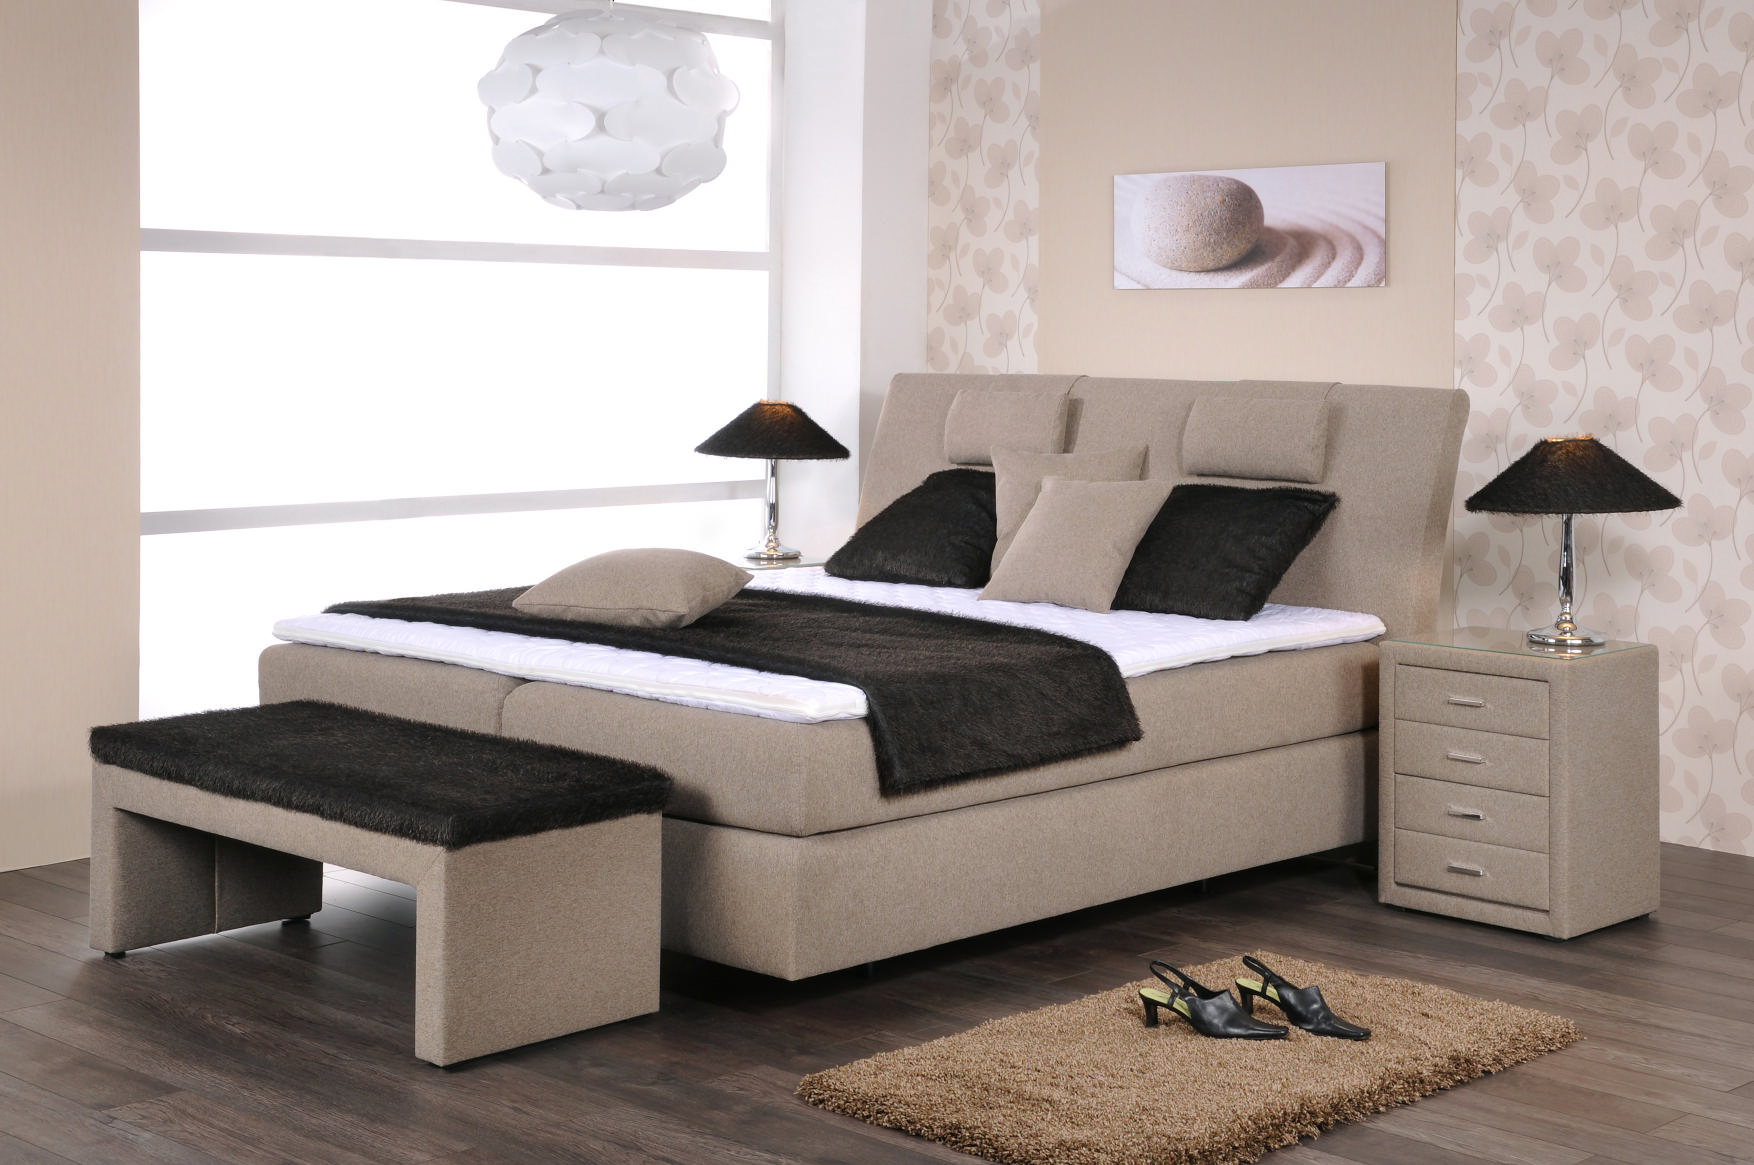 BELCANTO ROYAL Boxspringbett